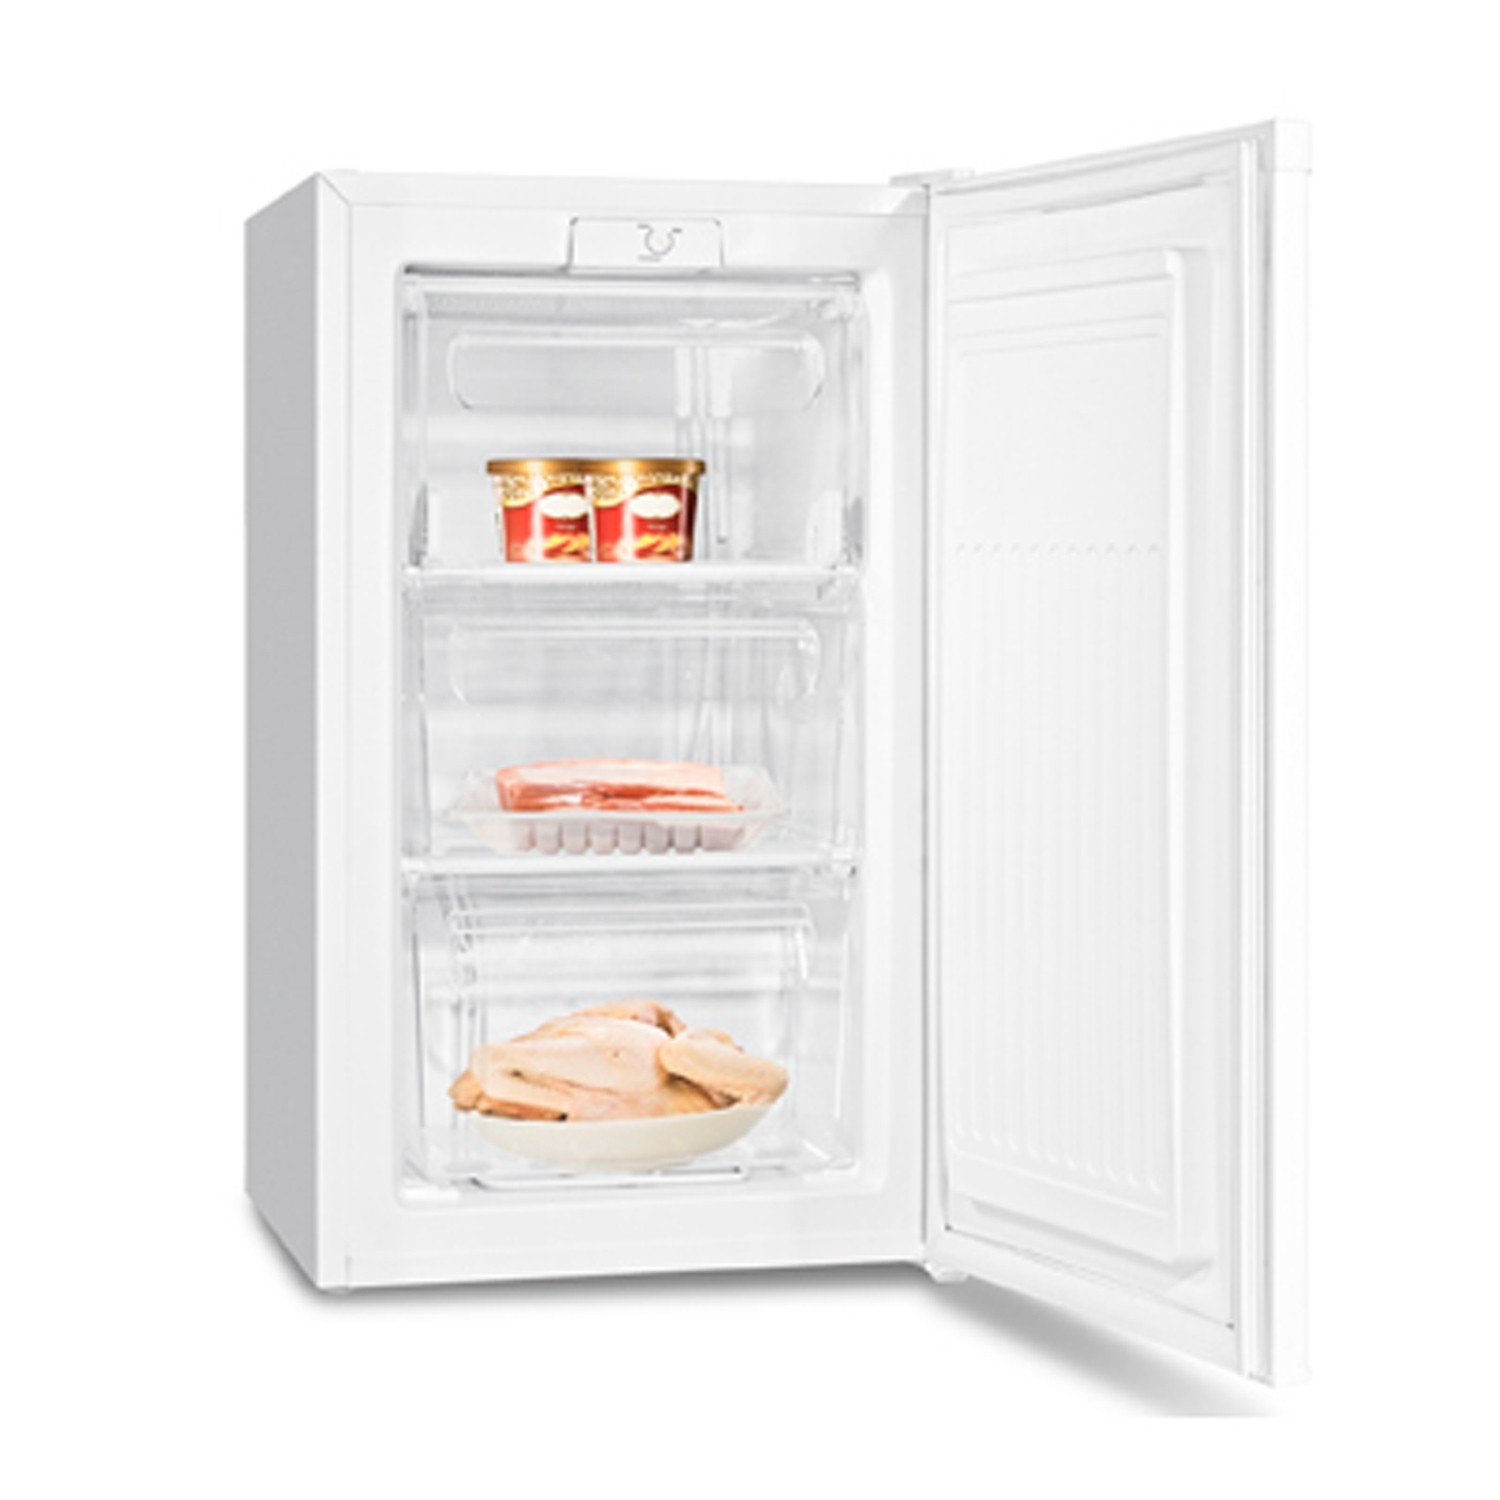 Fridgemaster Under Counter Freezer MUZ4965